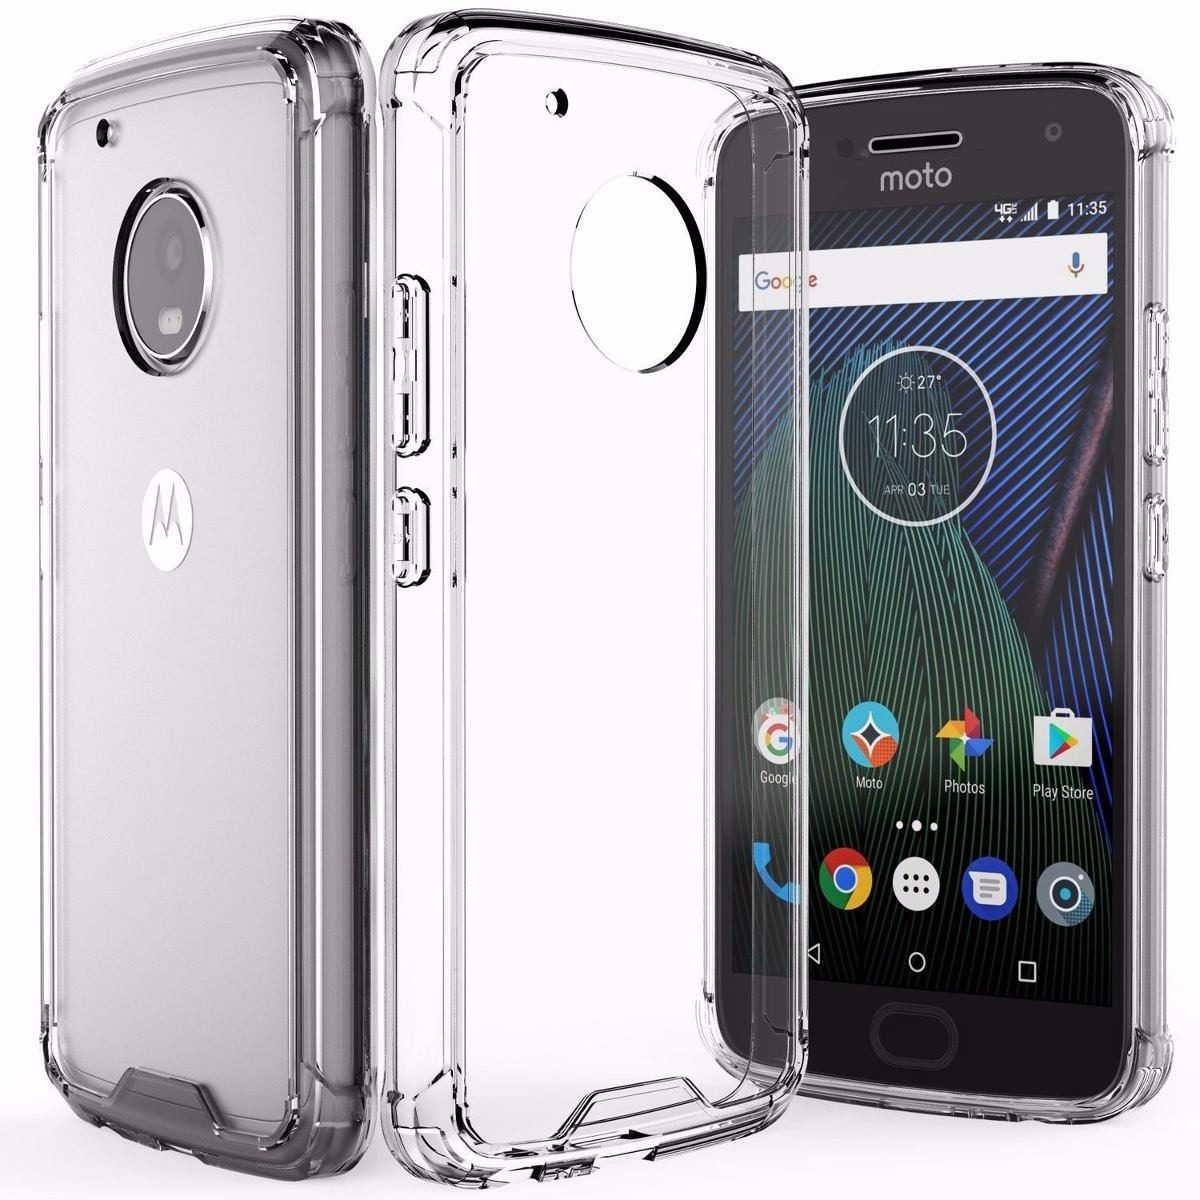 Kit 20 Capinha Anti Shock Transparente Lançamento 2018/2019 K11, Moto G7, G7 Play, J4 Core, J6 Plus